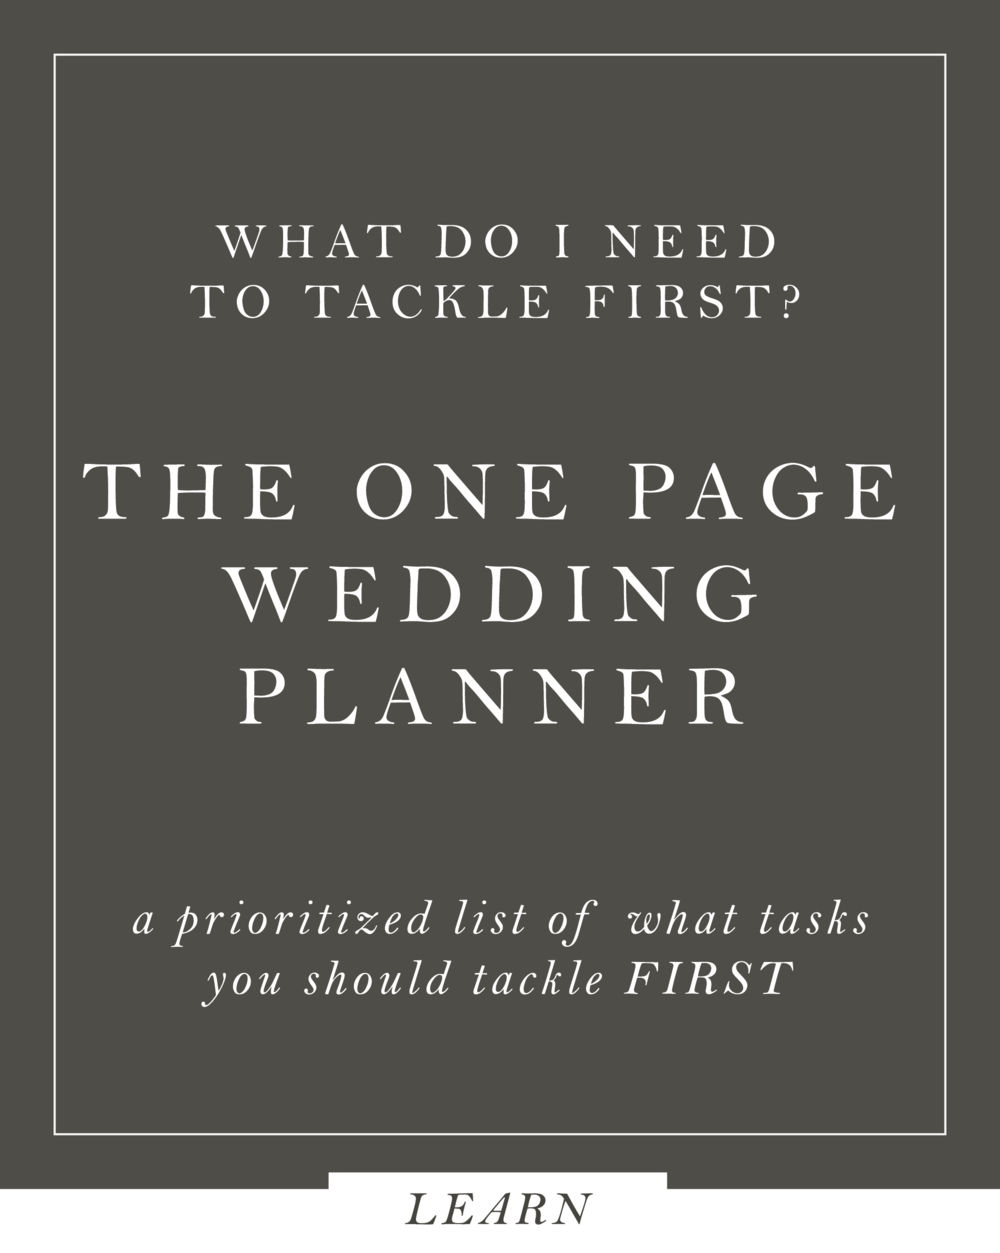 the one page wedding planner.png